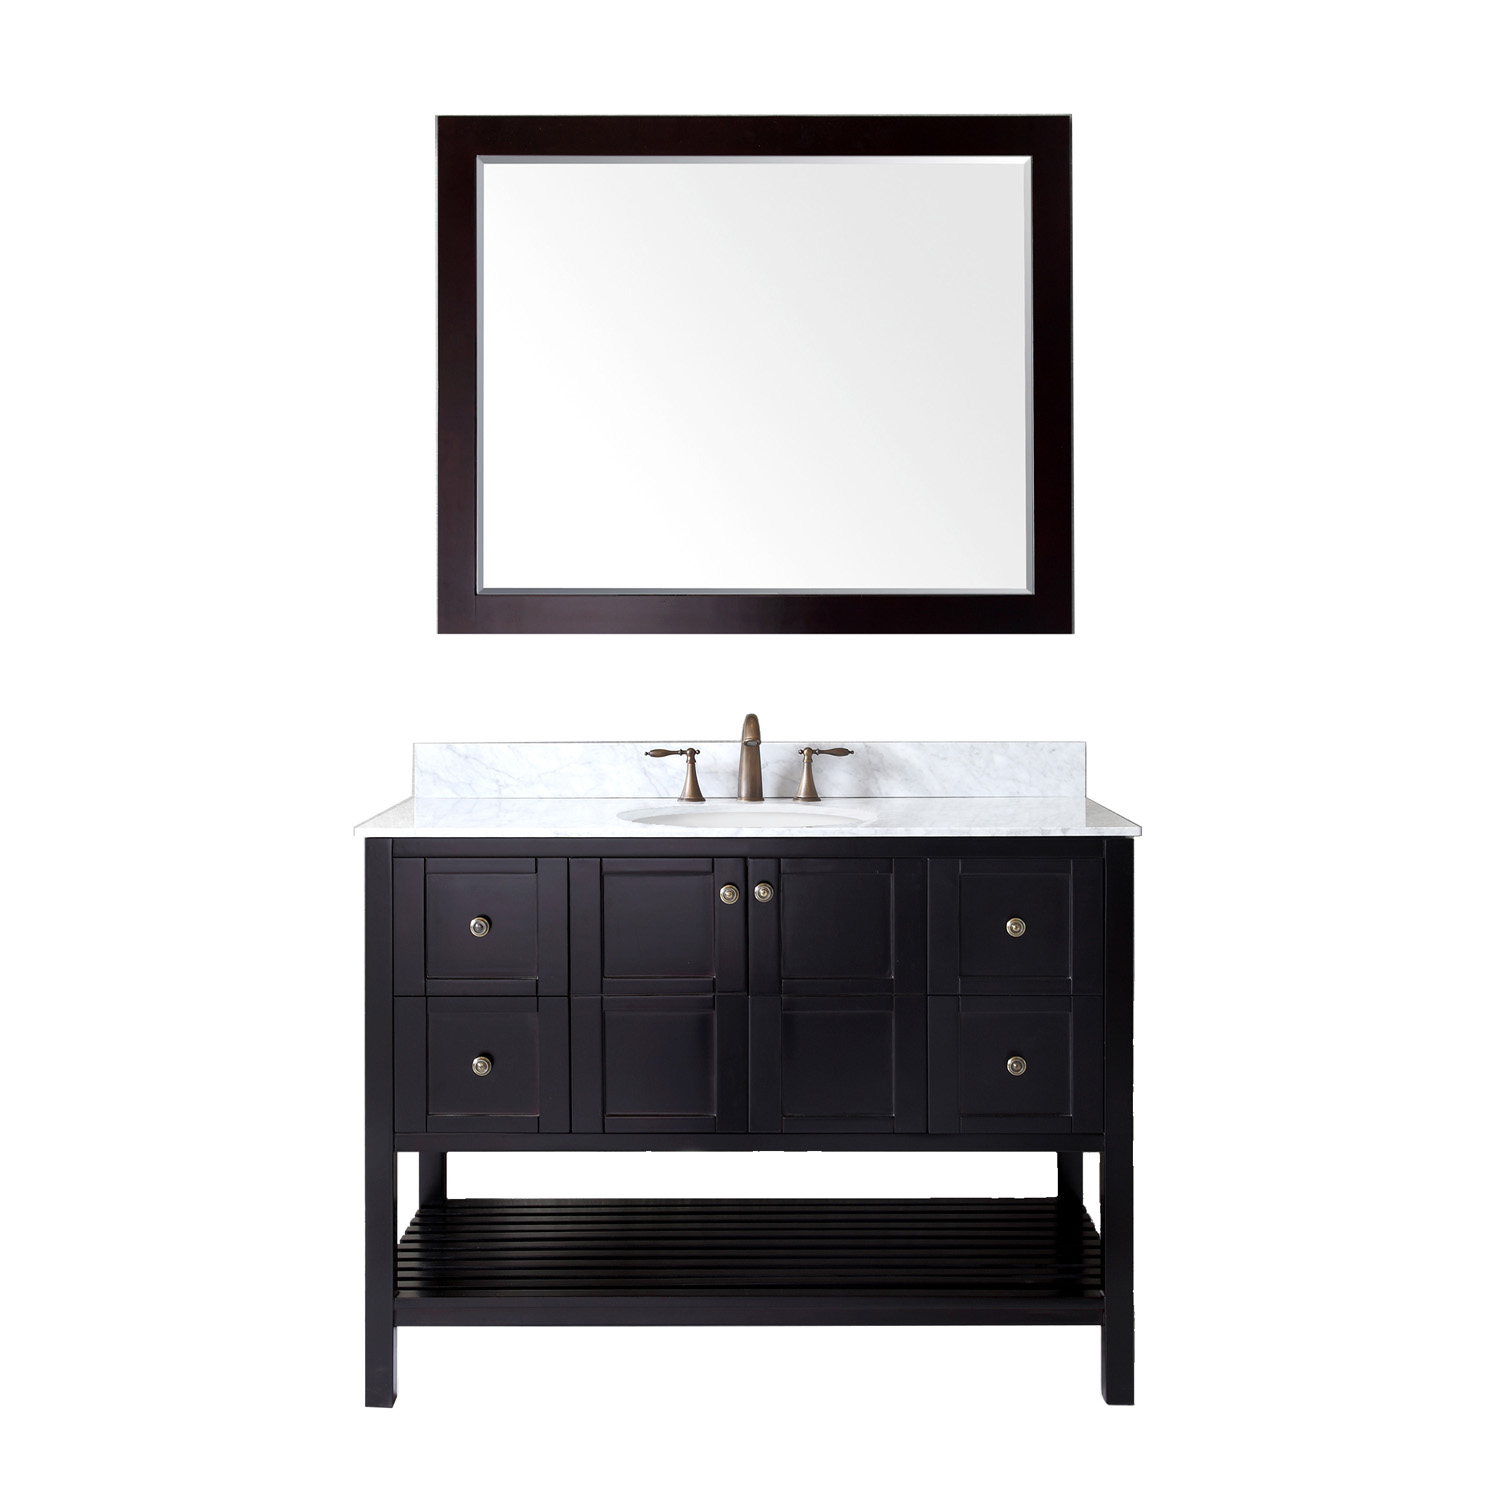 "48"" Single Bath Vanity in Espresso with Top, Sink and Mirror Options"